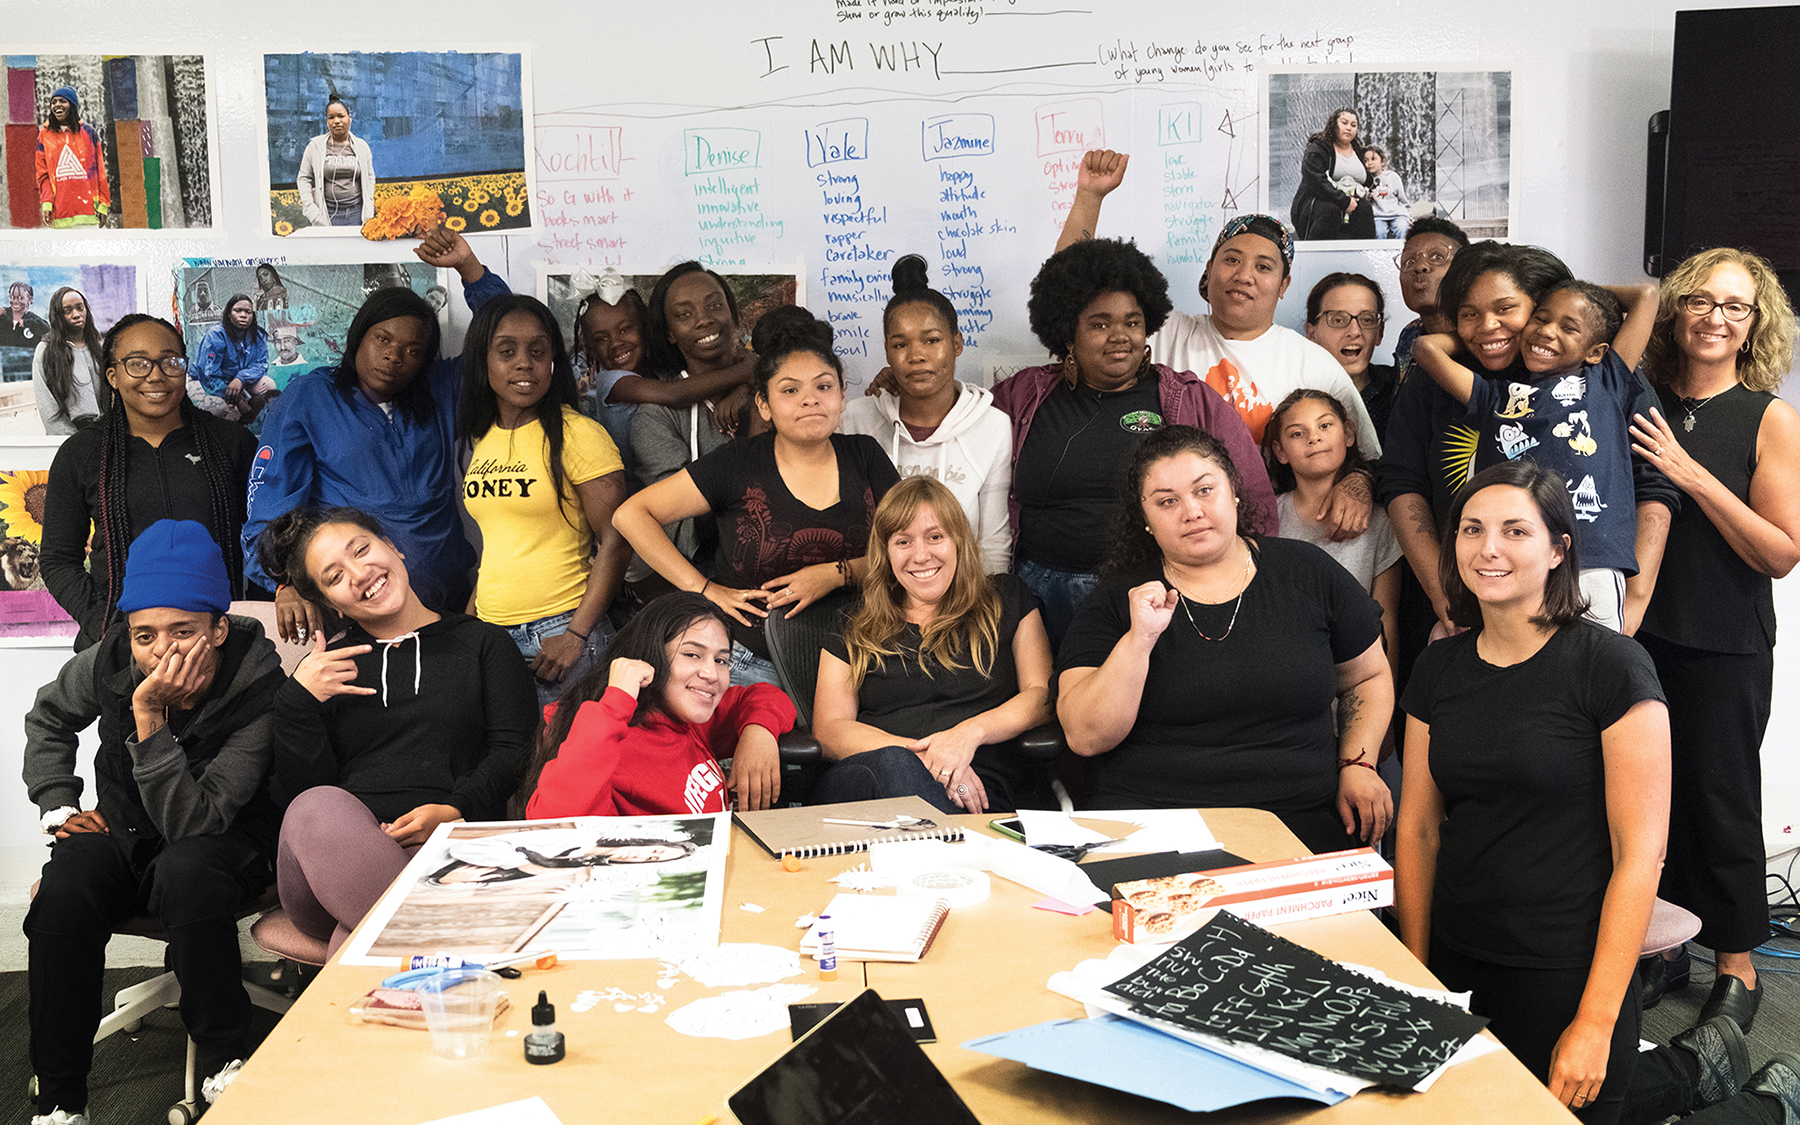 Professor Francine Sherman, far right, with colleagues and young women who have taken up the I Am Why challenge to become activists for policy change. They gathered at the Young Women's Freedom Center in San Francisco.